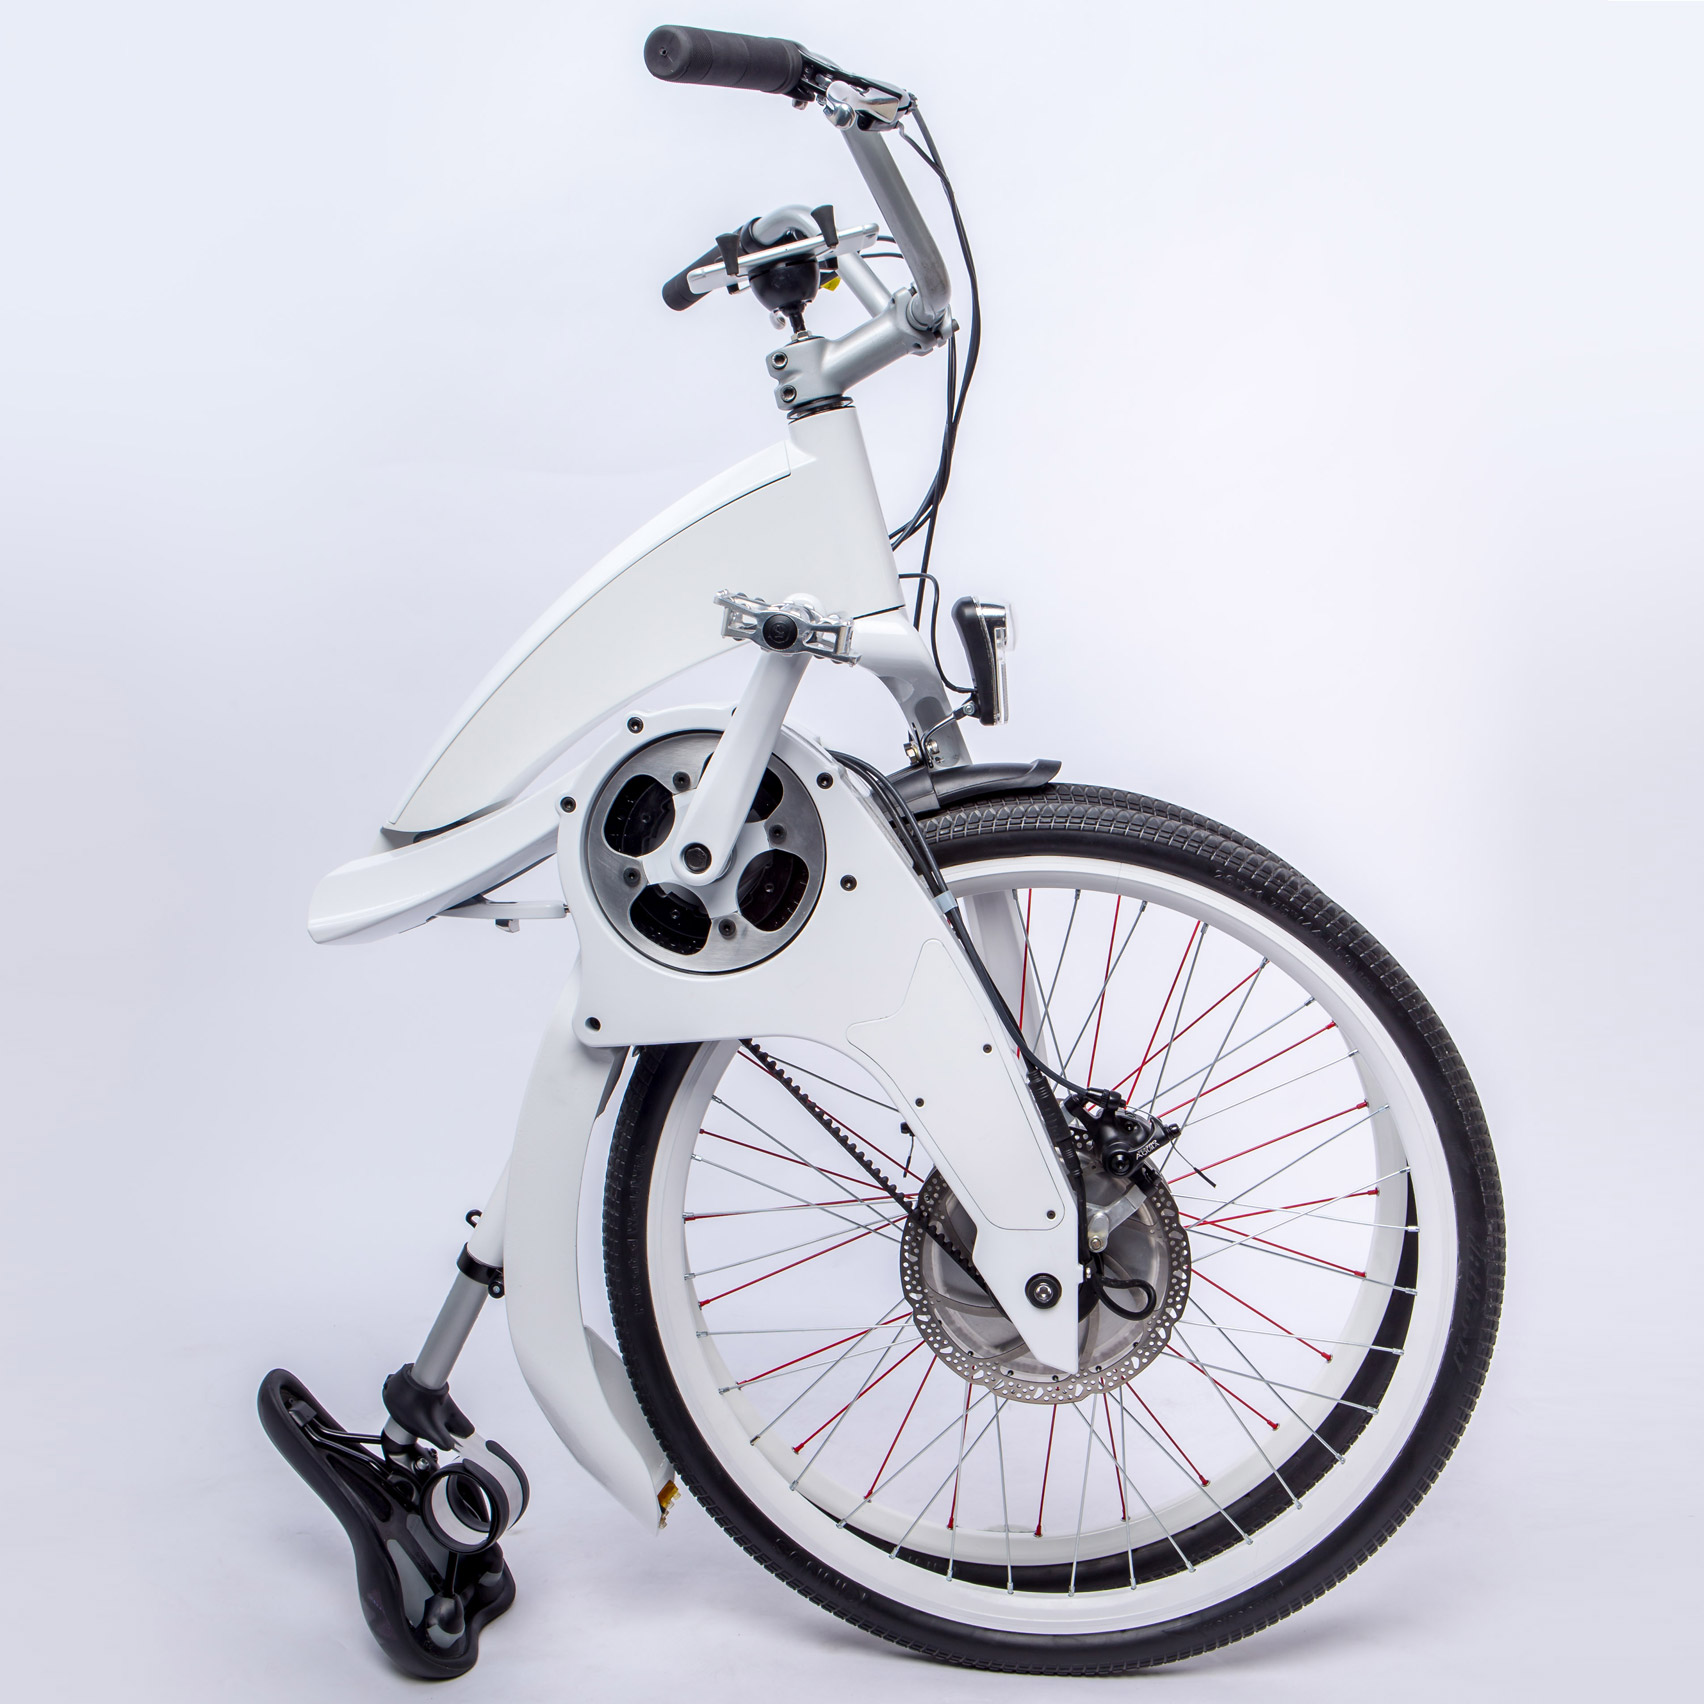 Electric Gi FlyBike only takes a second for city riders to fold up